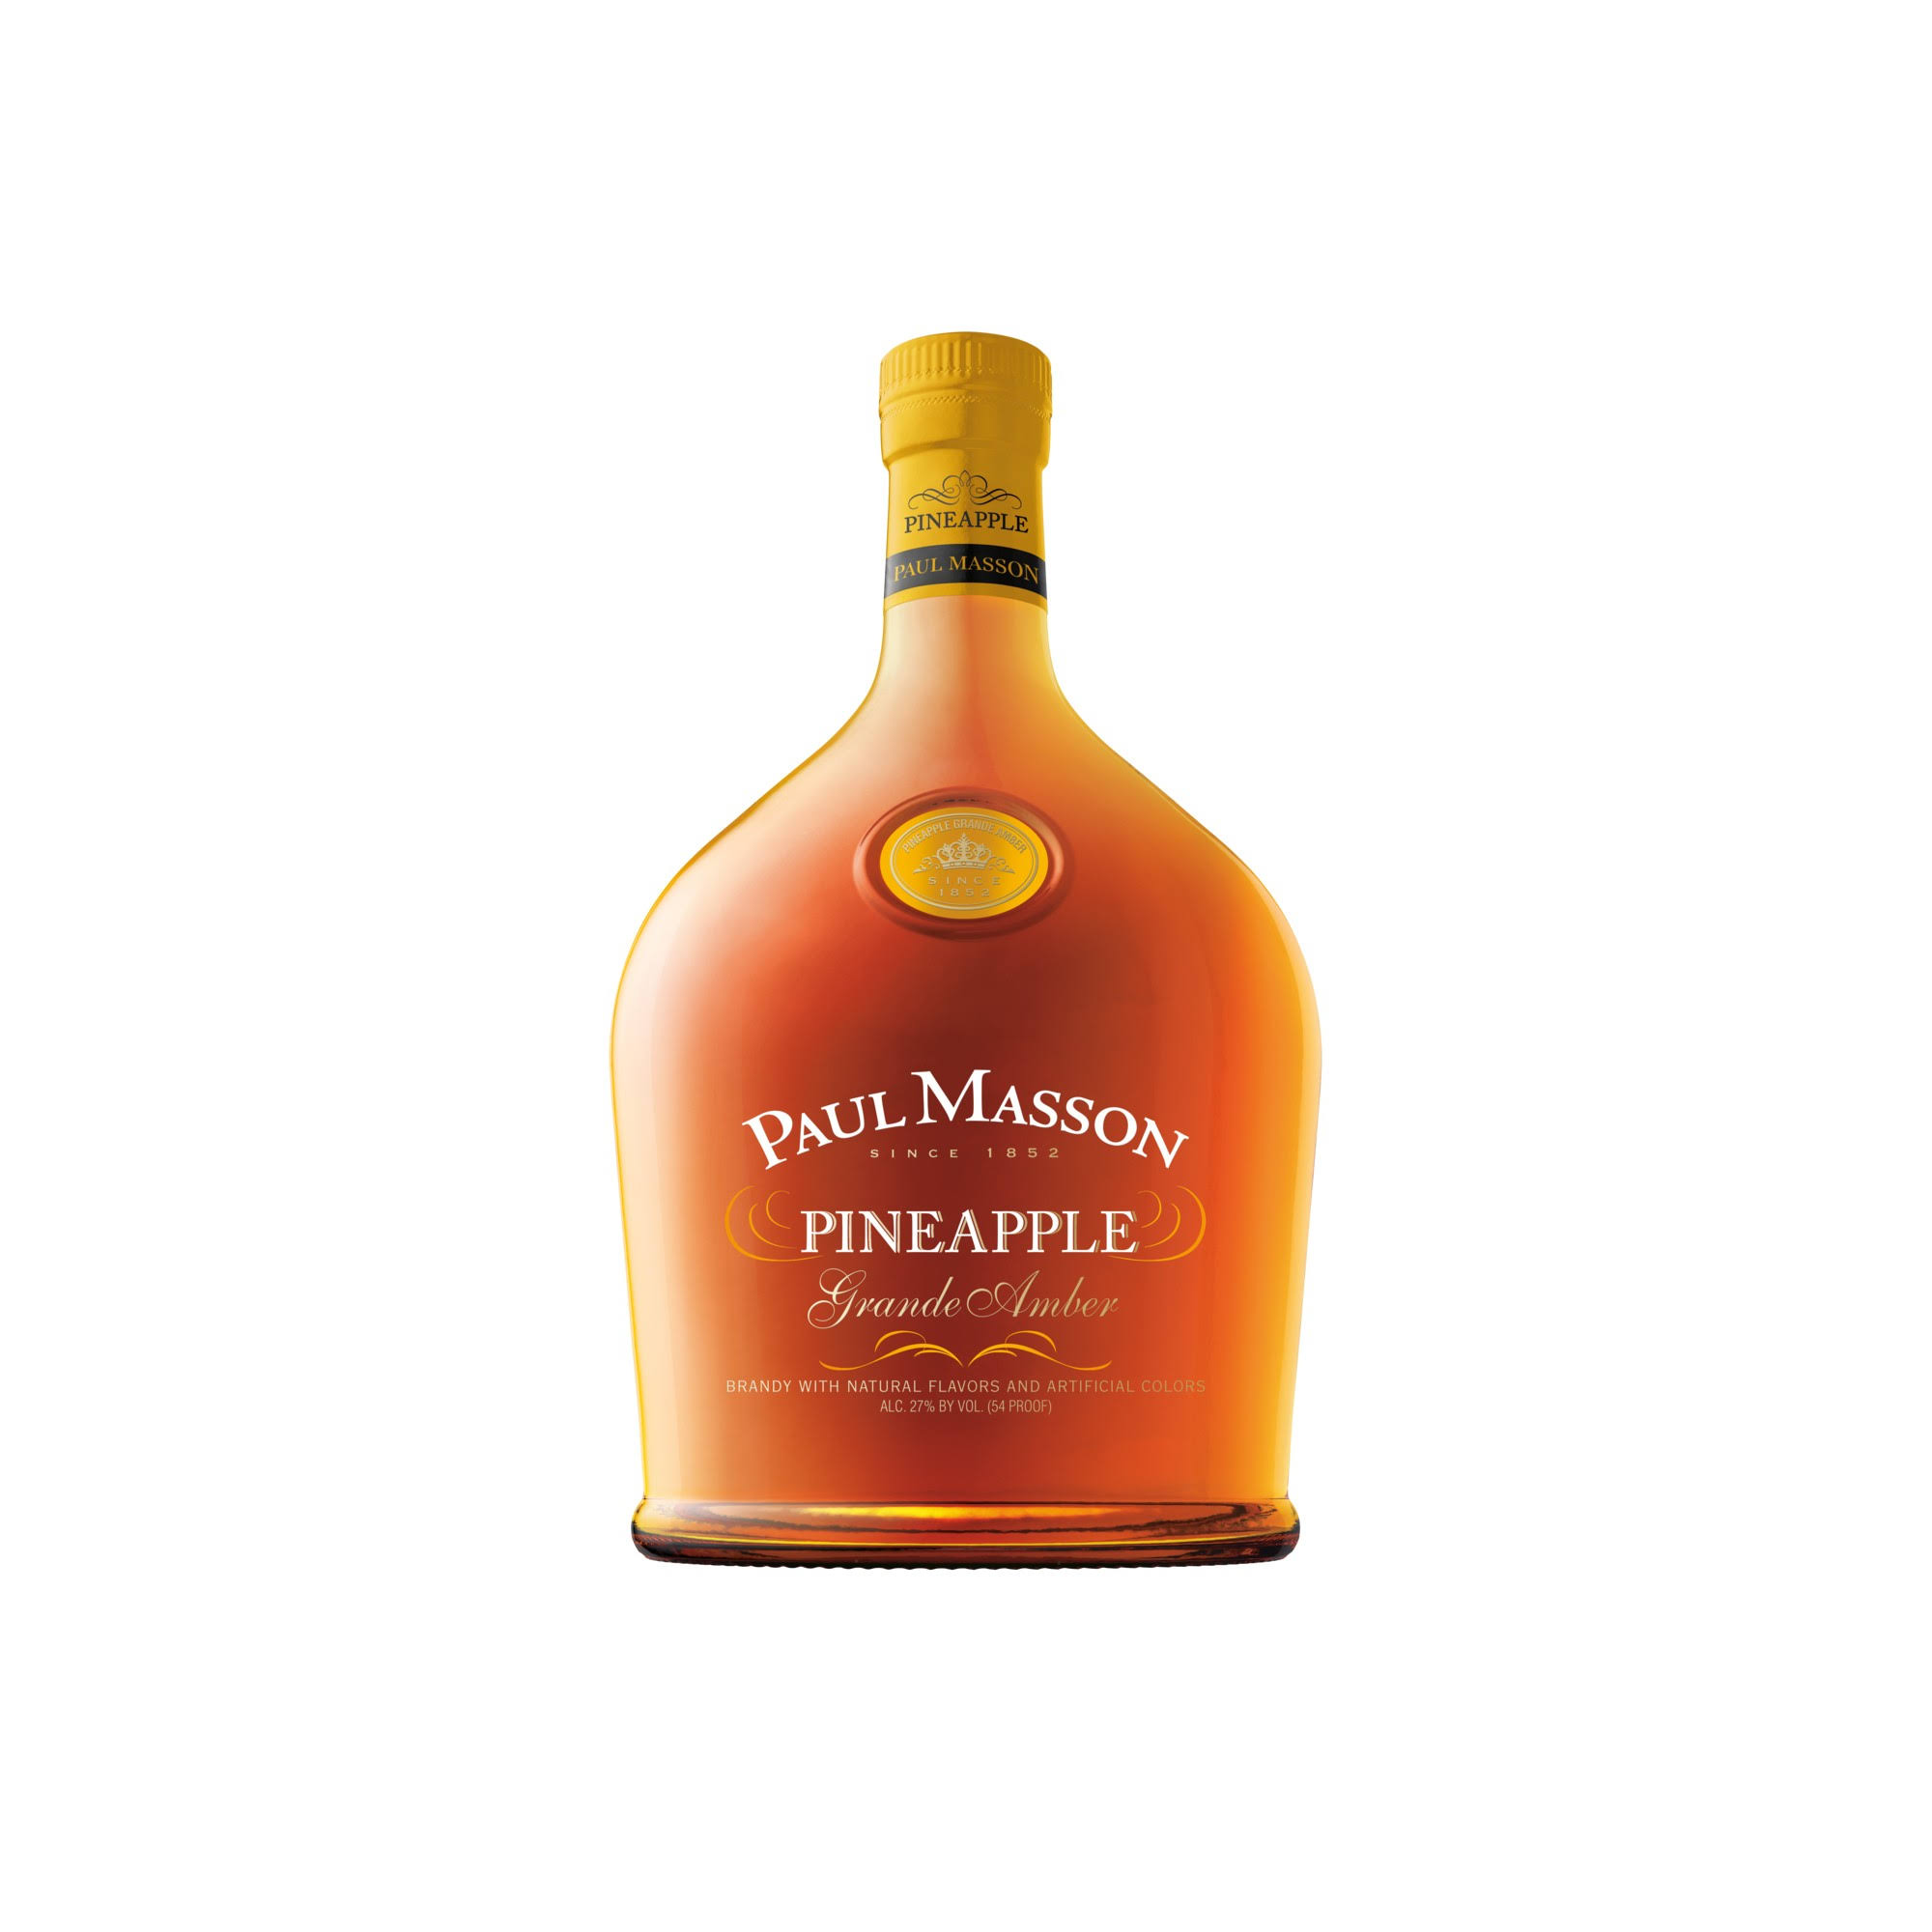 Paul Masson Brandy Grande Amber Pineapple - 750ml